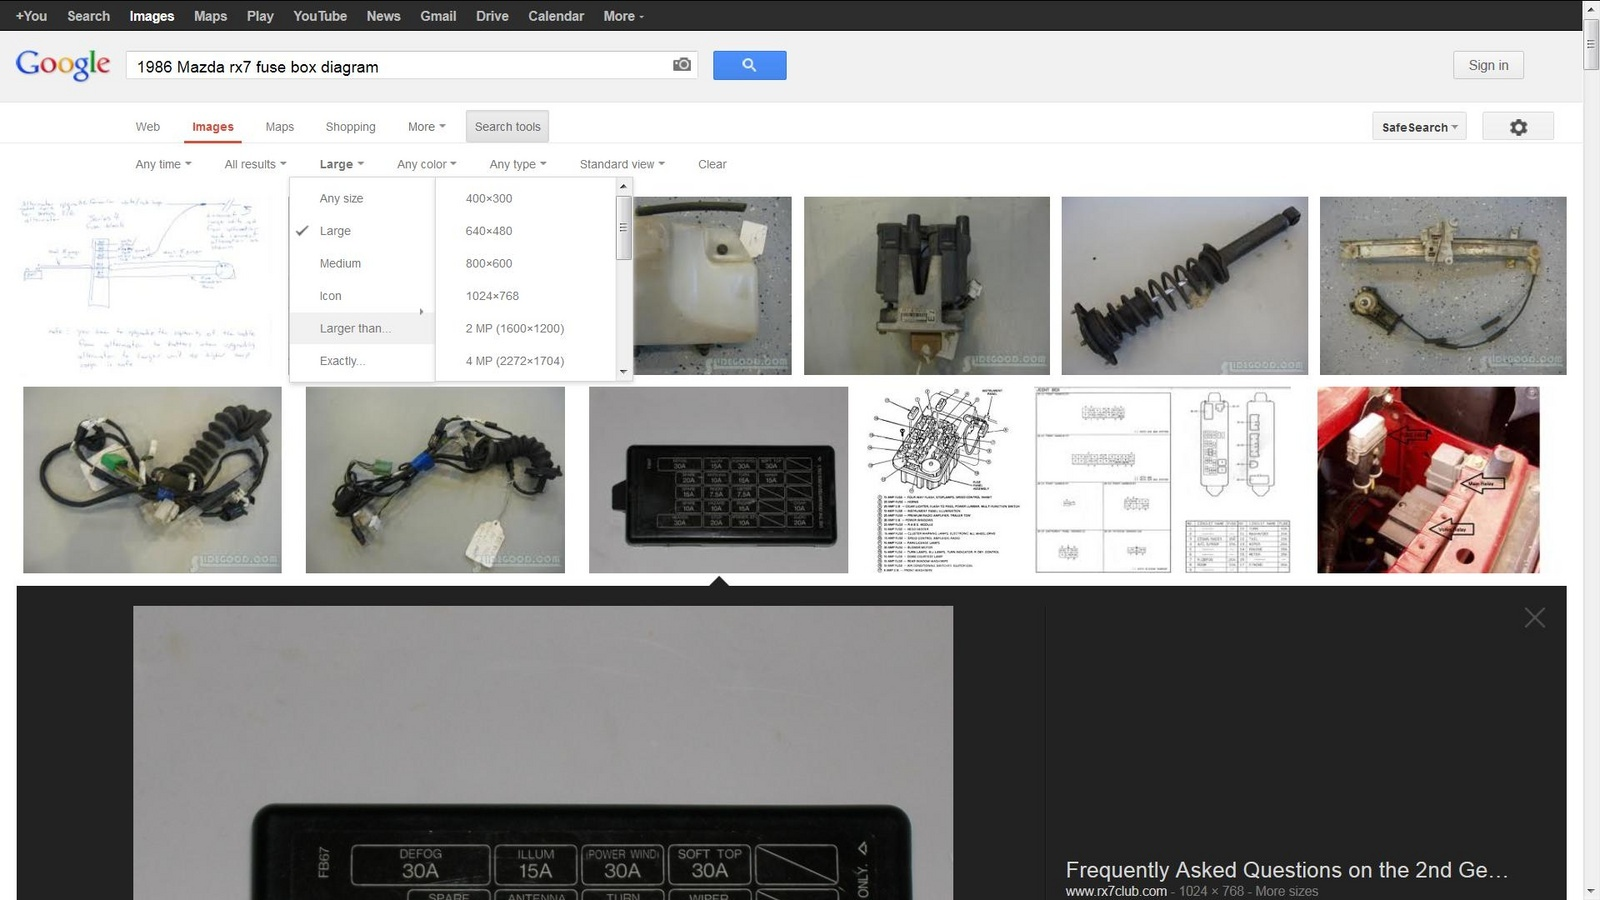 how to get bigger pics on Google image, search tools, size, click